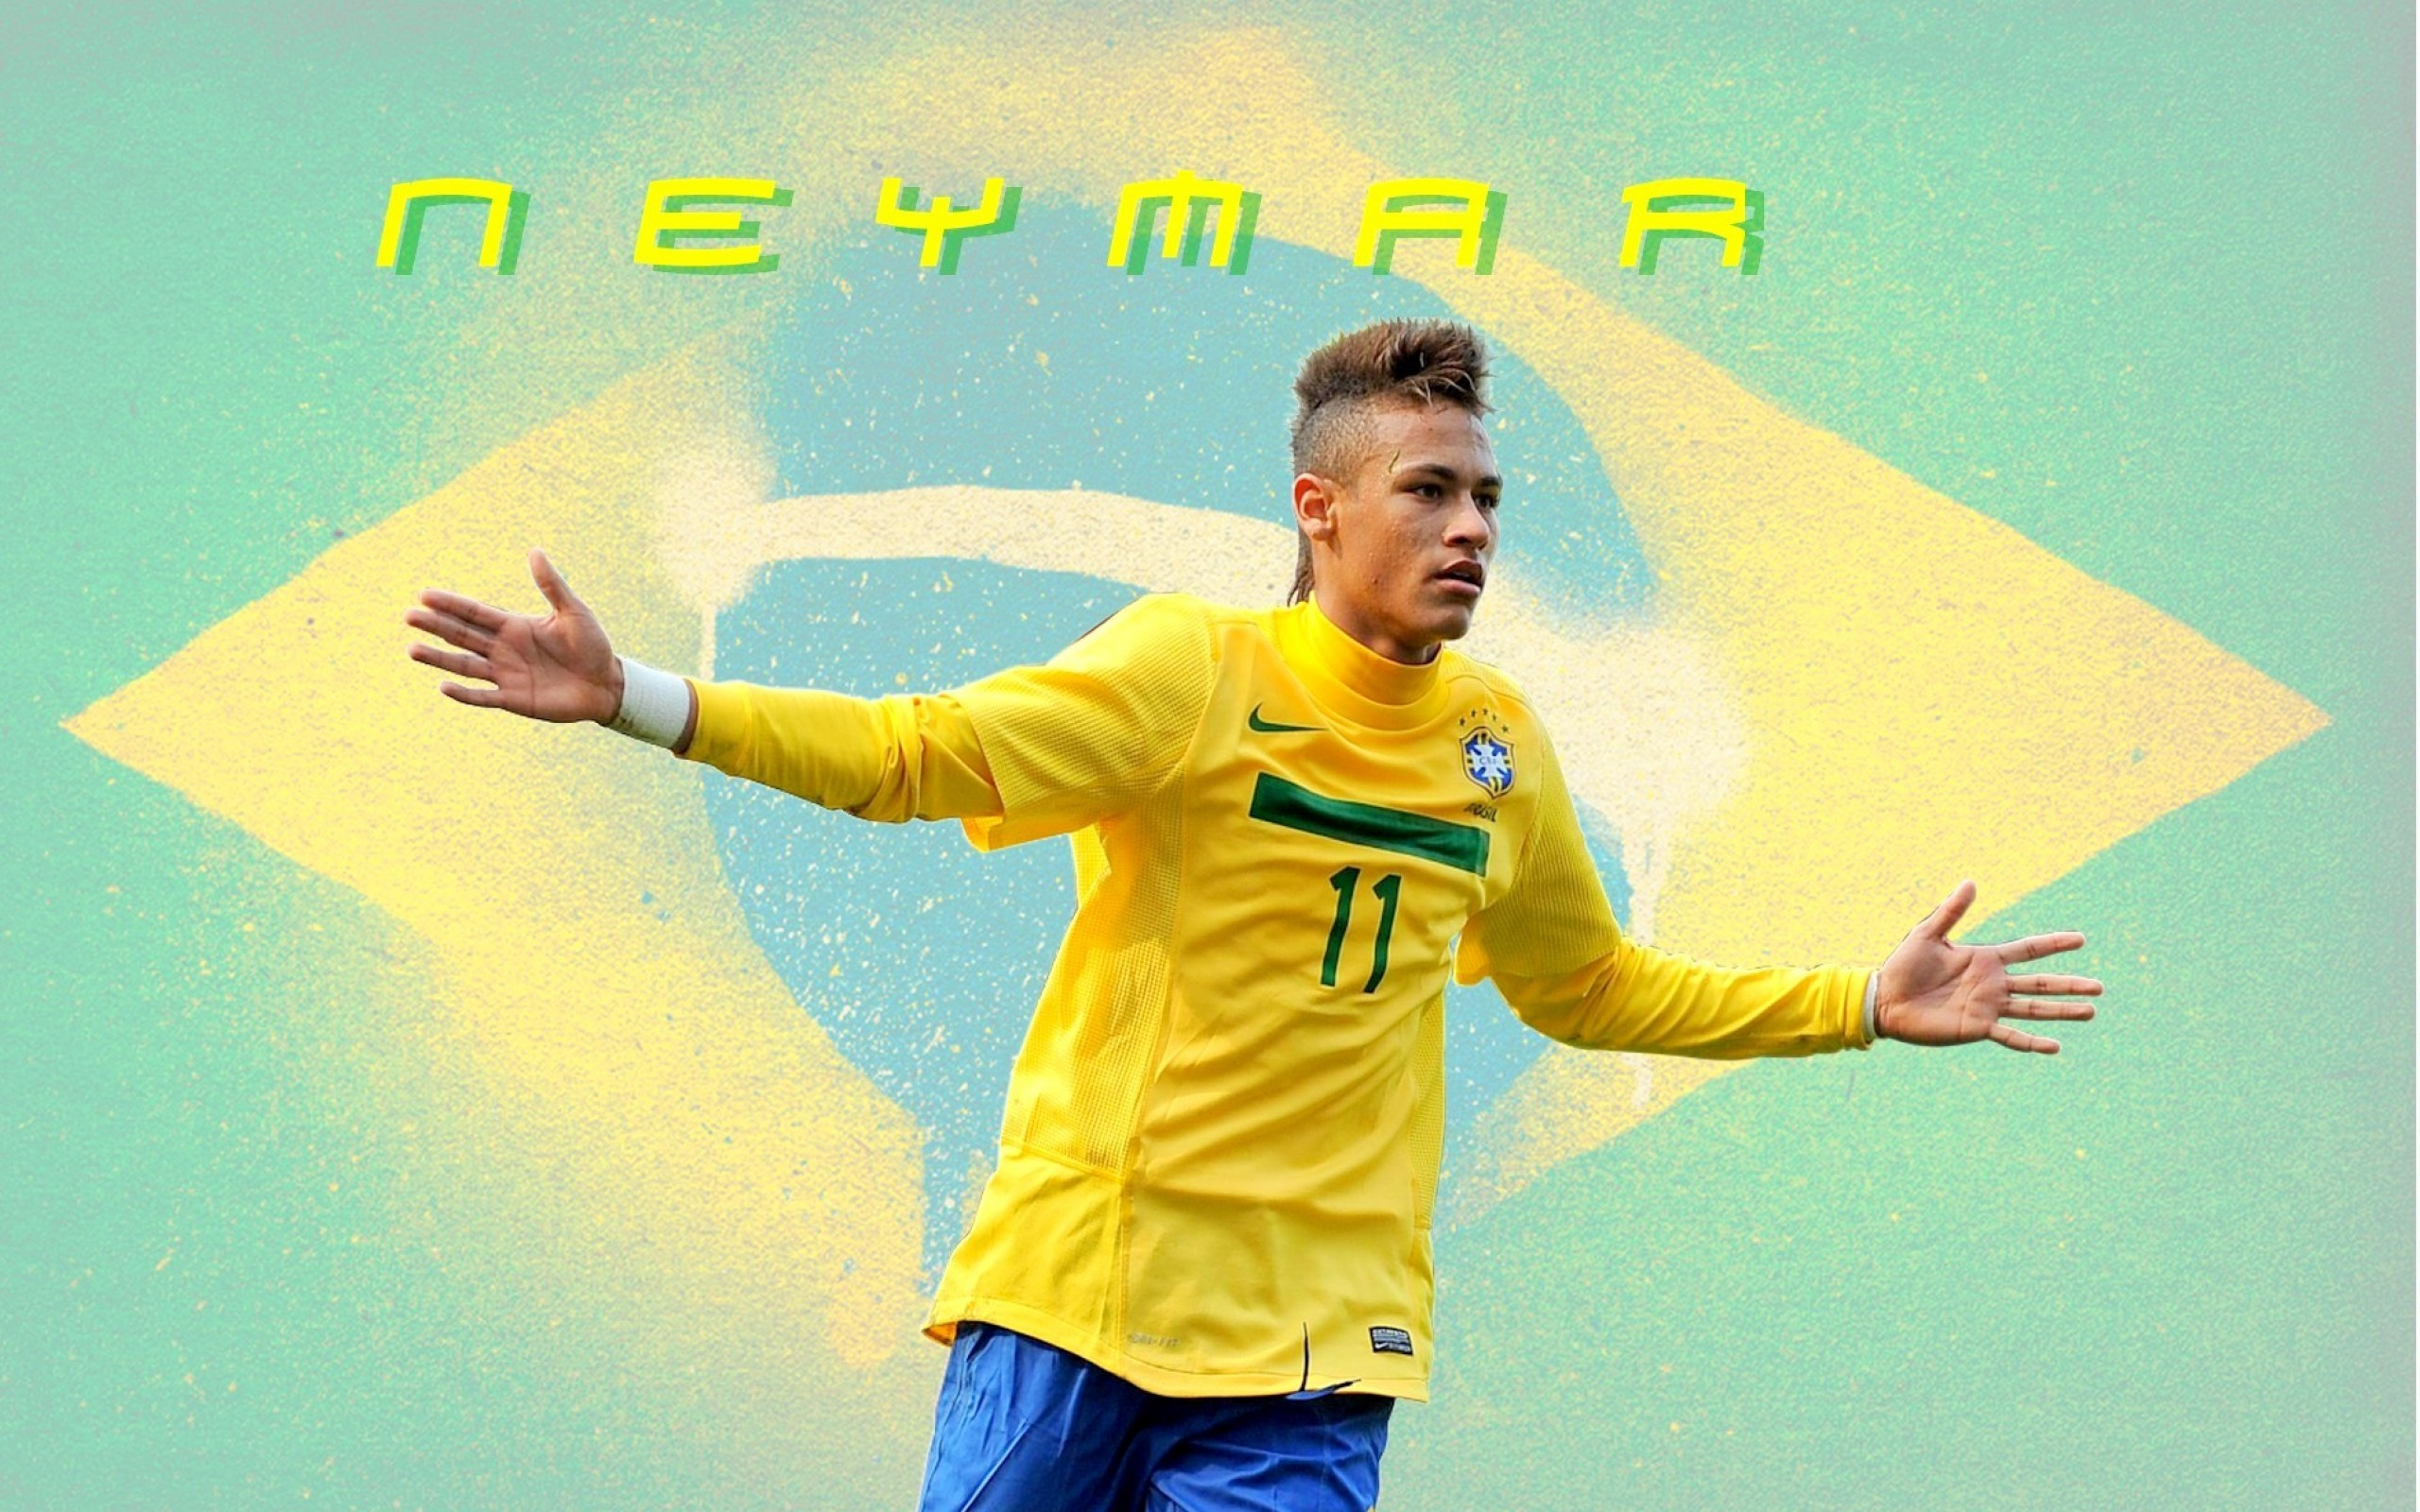 Neymar  Soccer  Brazil HD Wallpaper